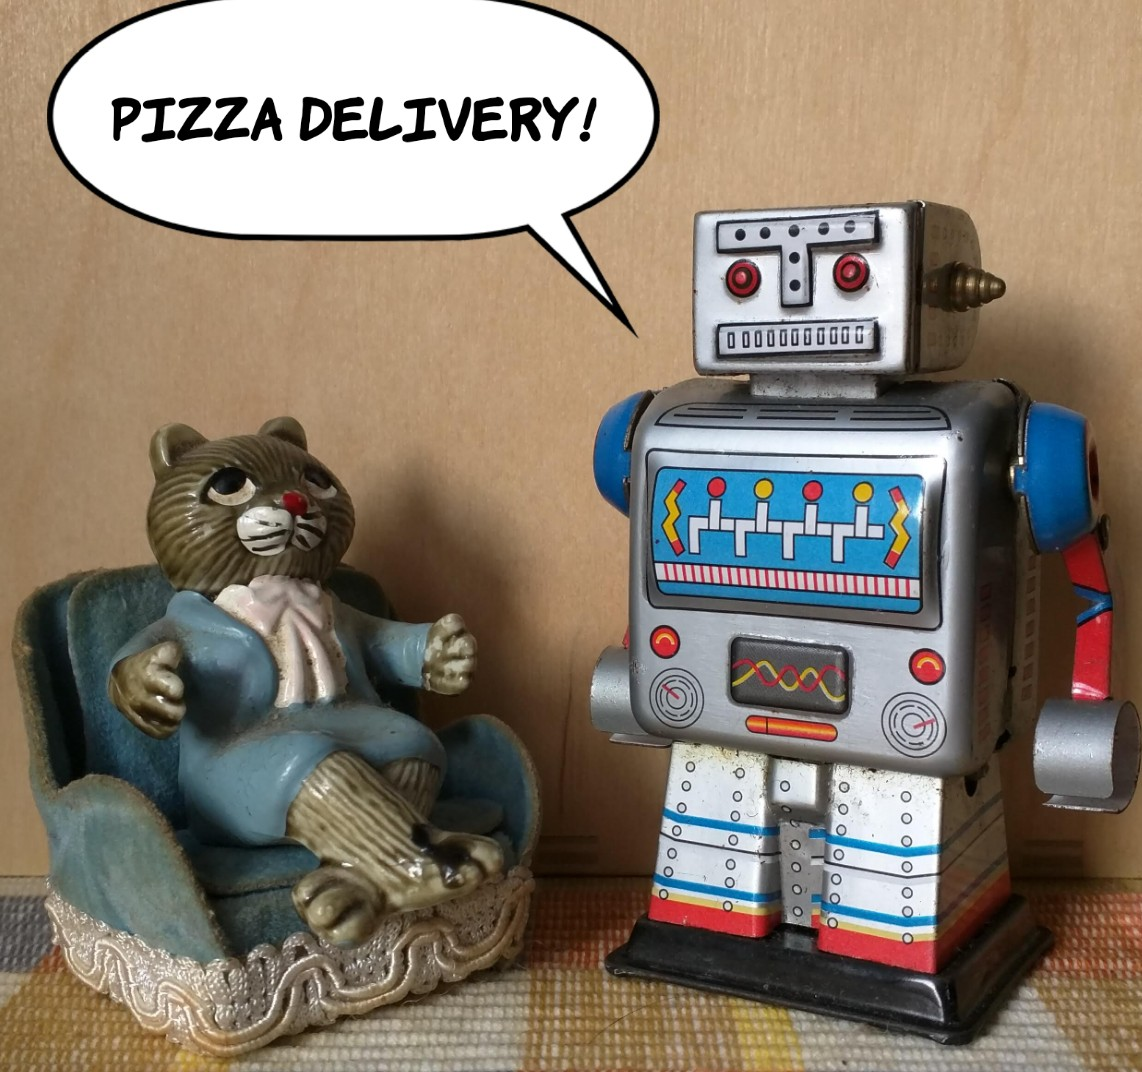 Robot says: Pizza delivery!